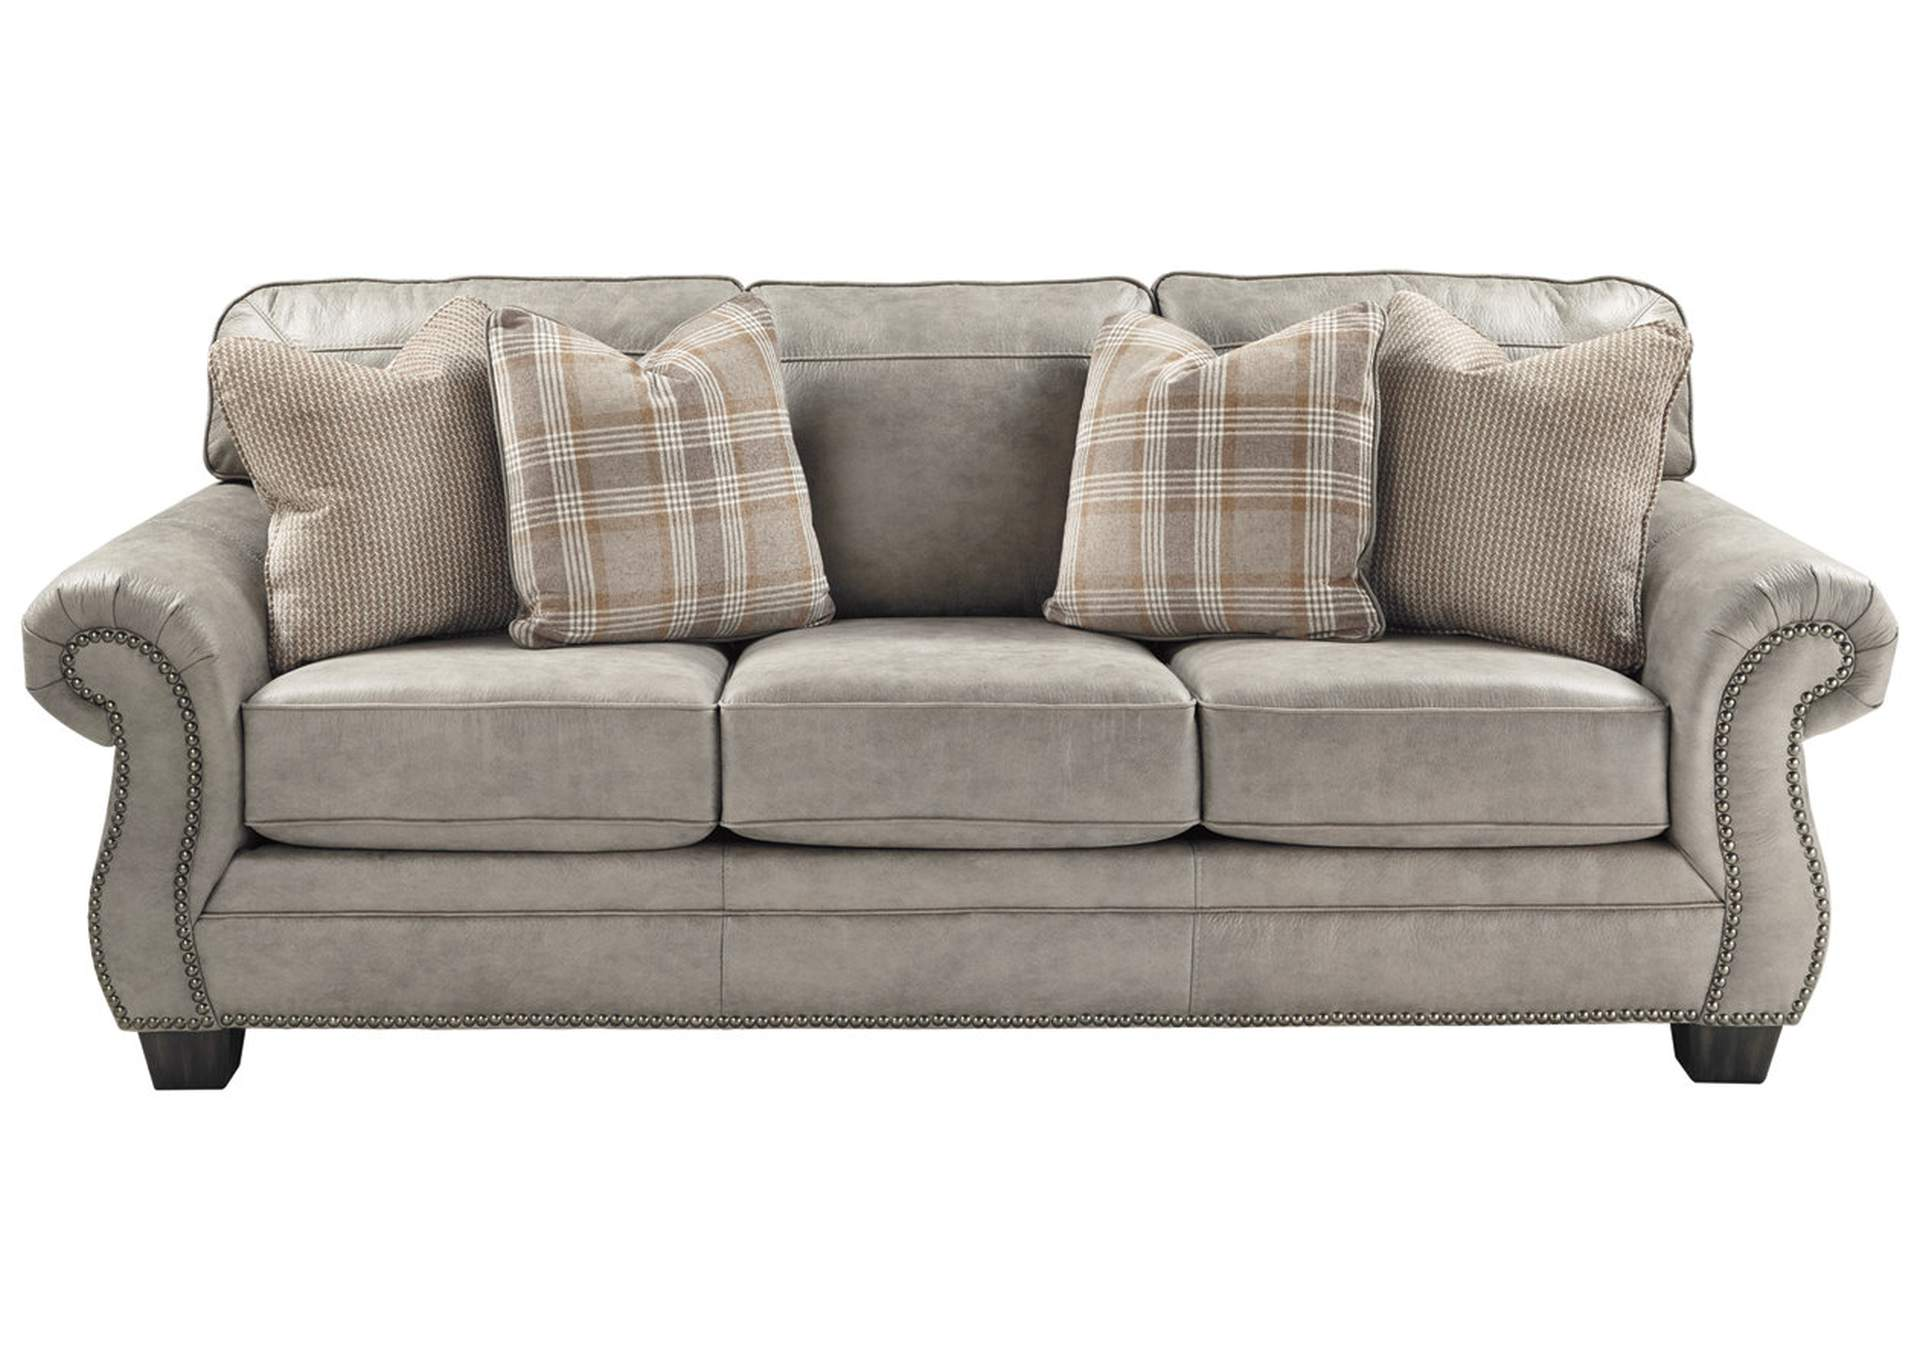 Olsberg Steel Sofa,Signature Design By Ashley